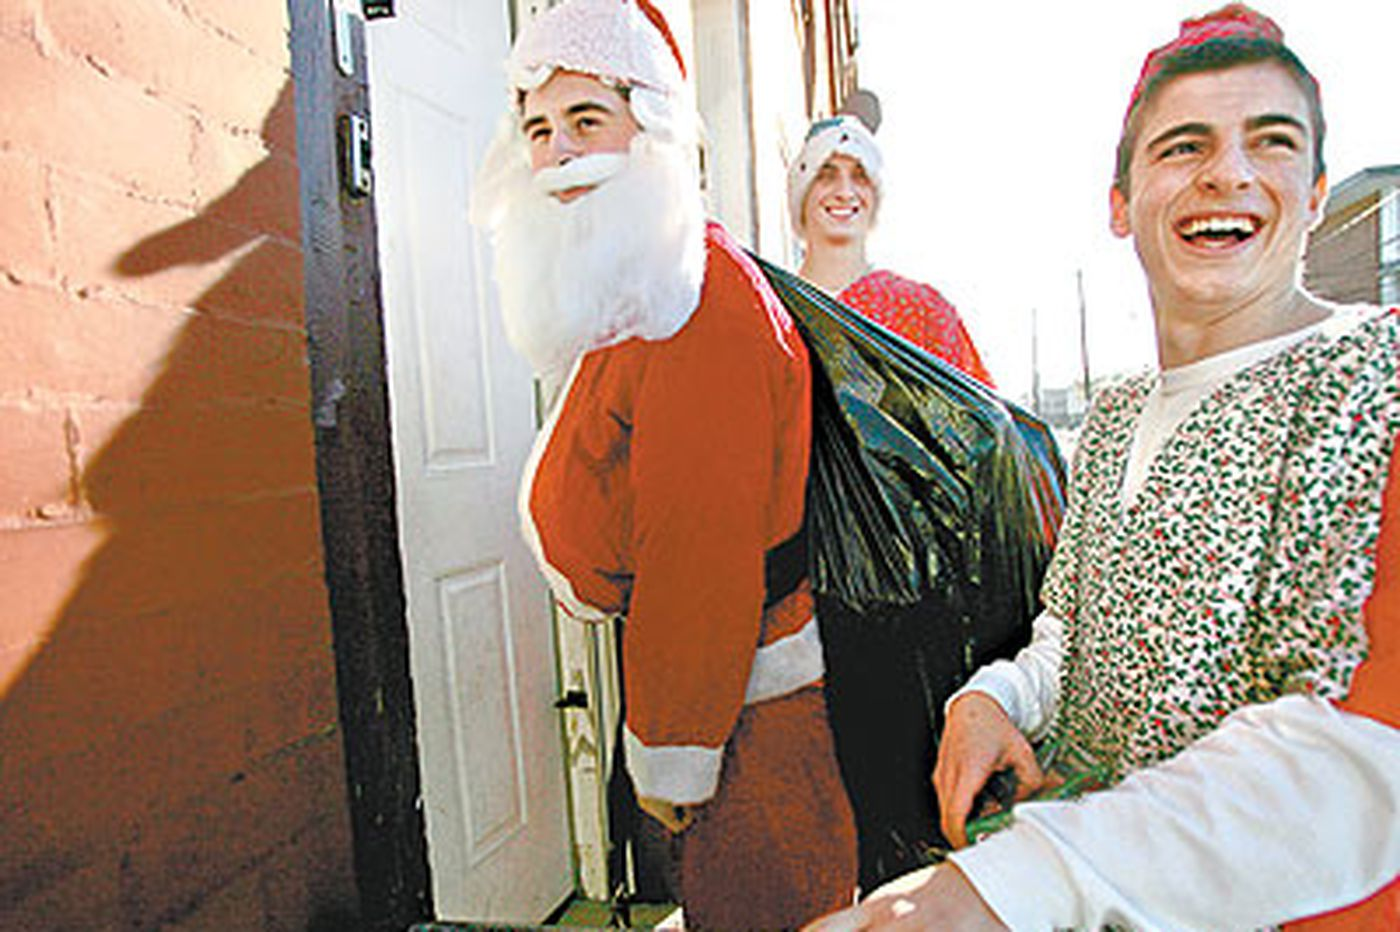 Teen Santas deliver to the less fortunate